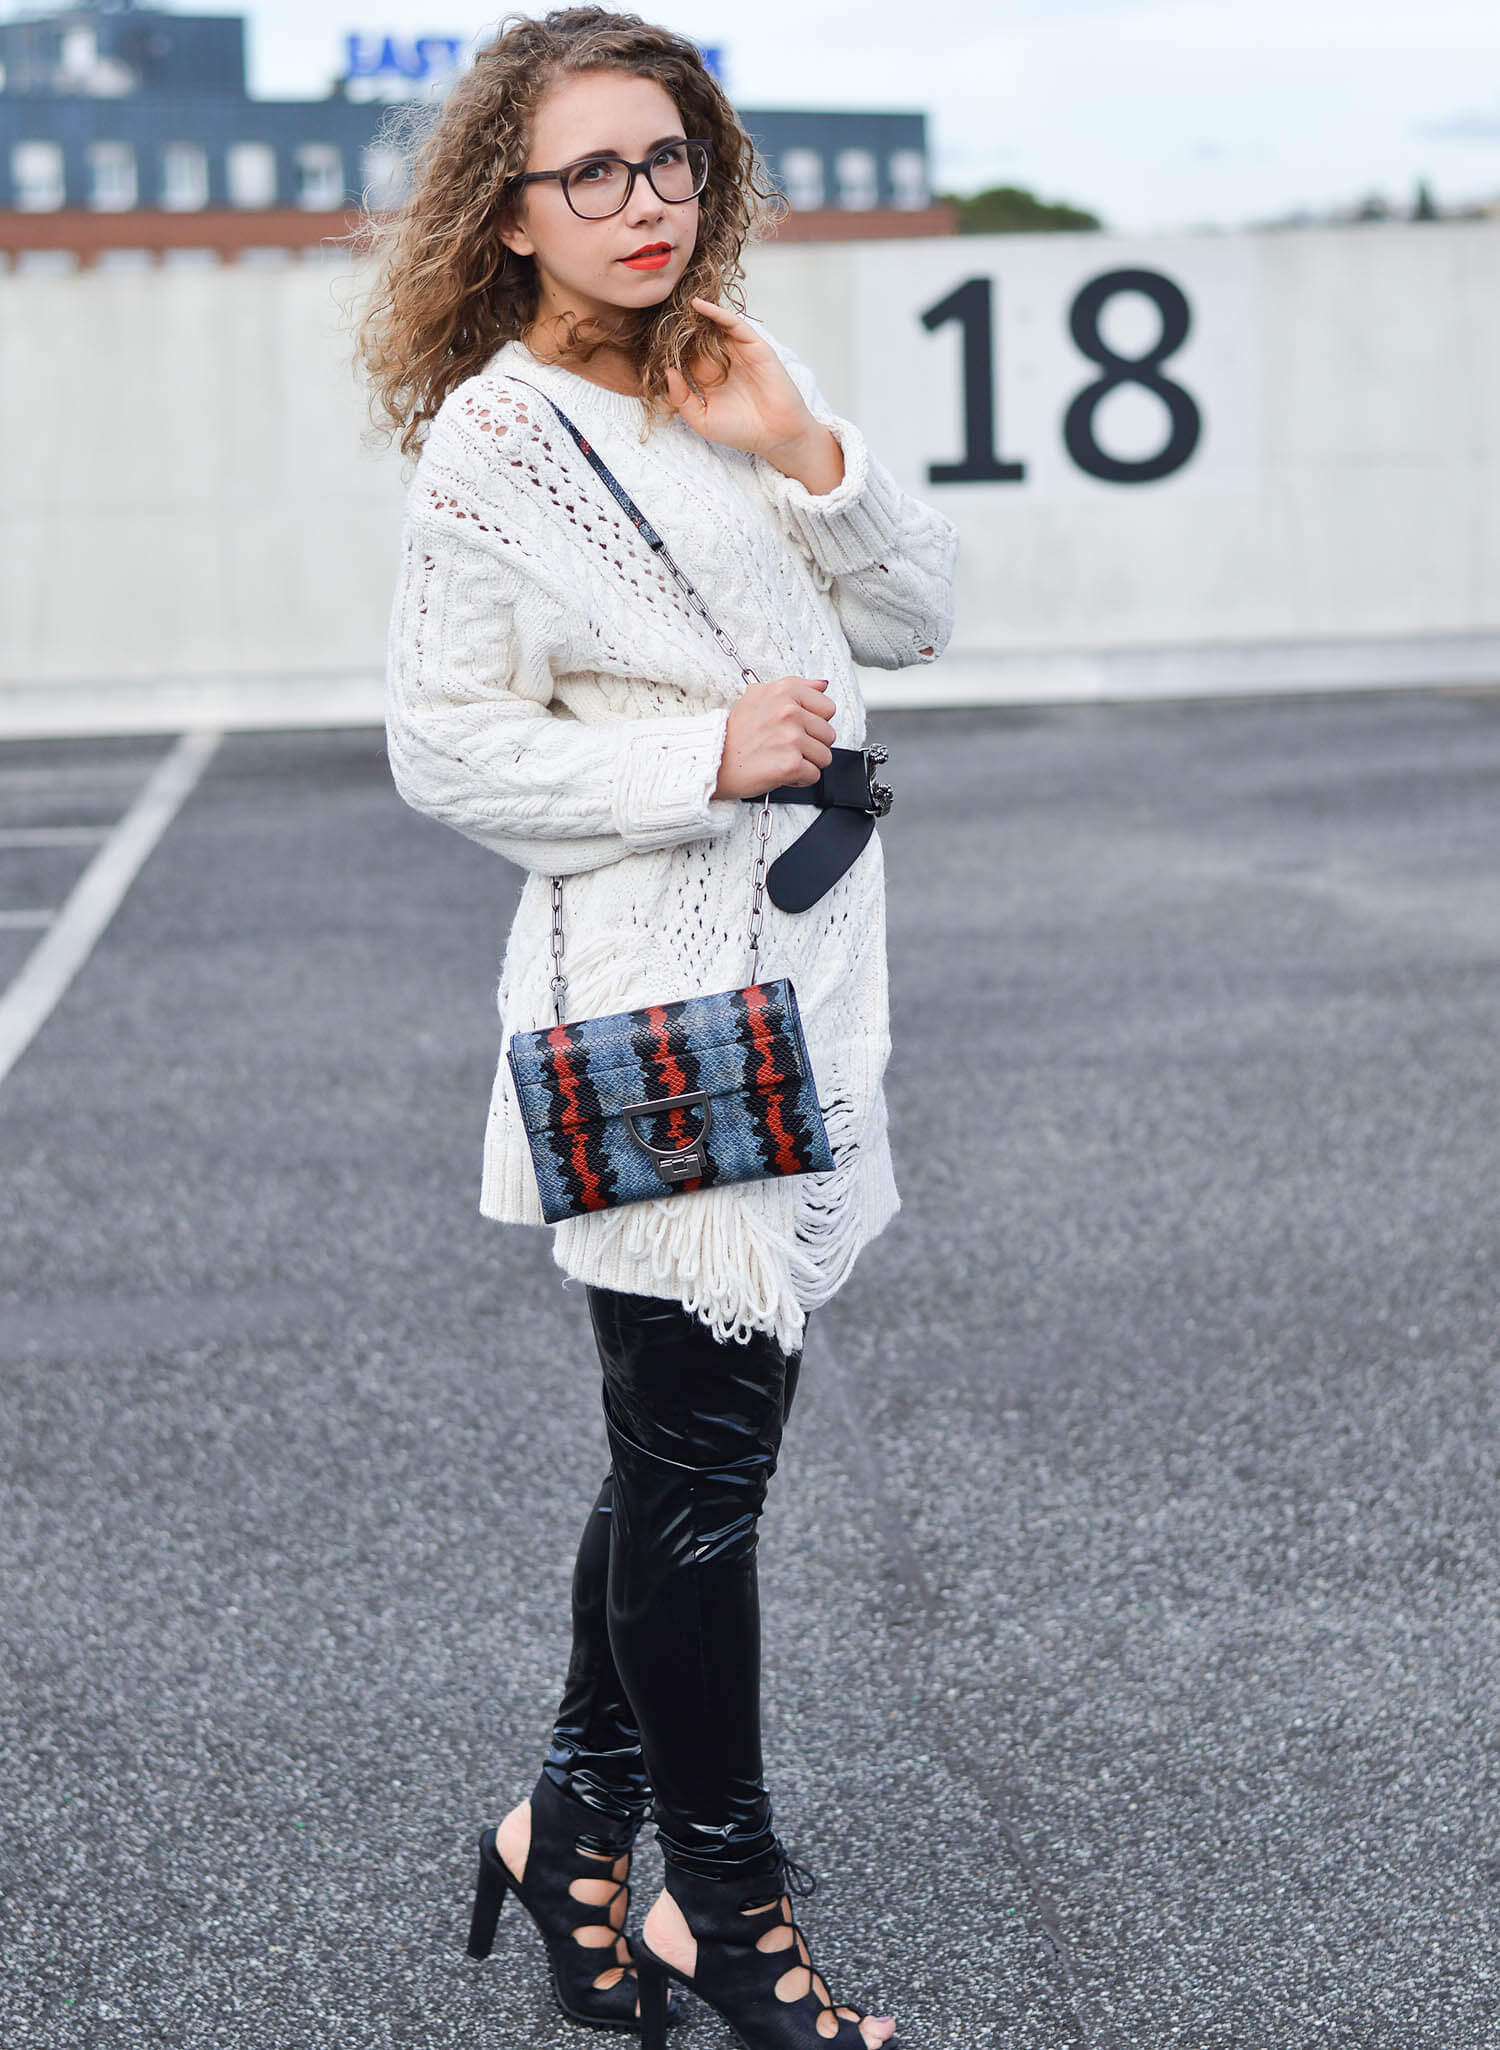 kationette-fashionblogger-nrw-Outfit-Vinyl-Pants-oversized-Zara-Knit-Coccinelle-Bag-and-Gucci-Belt